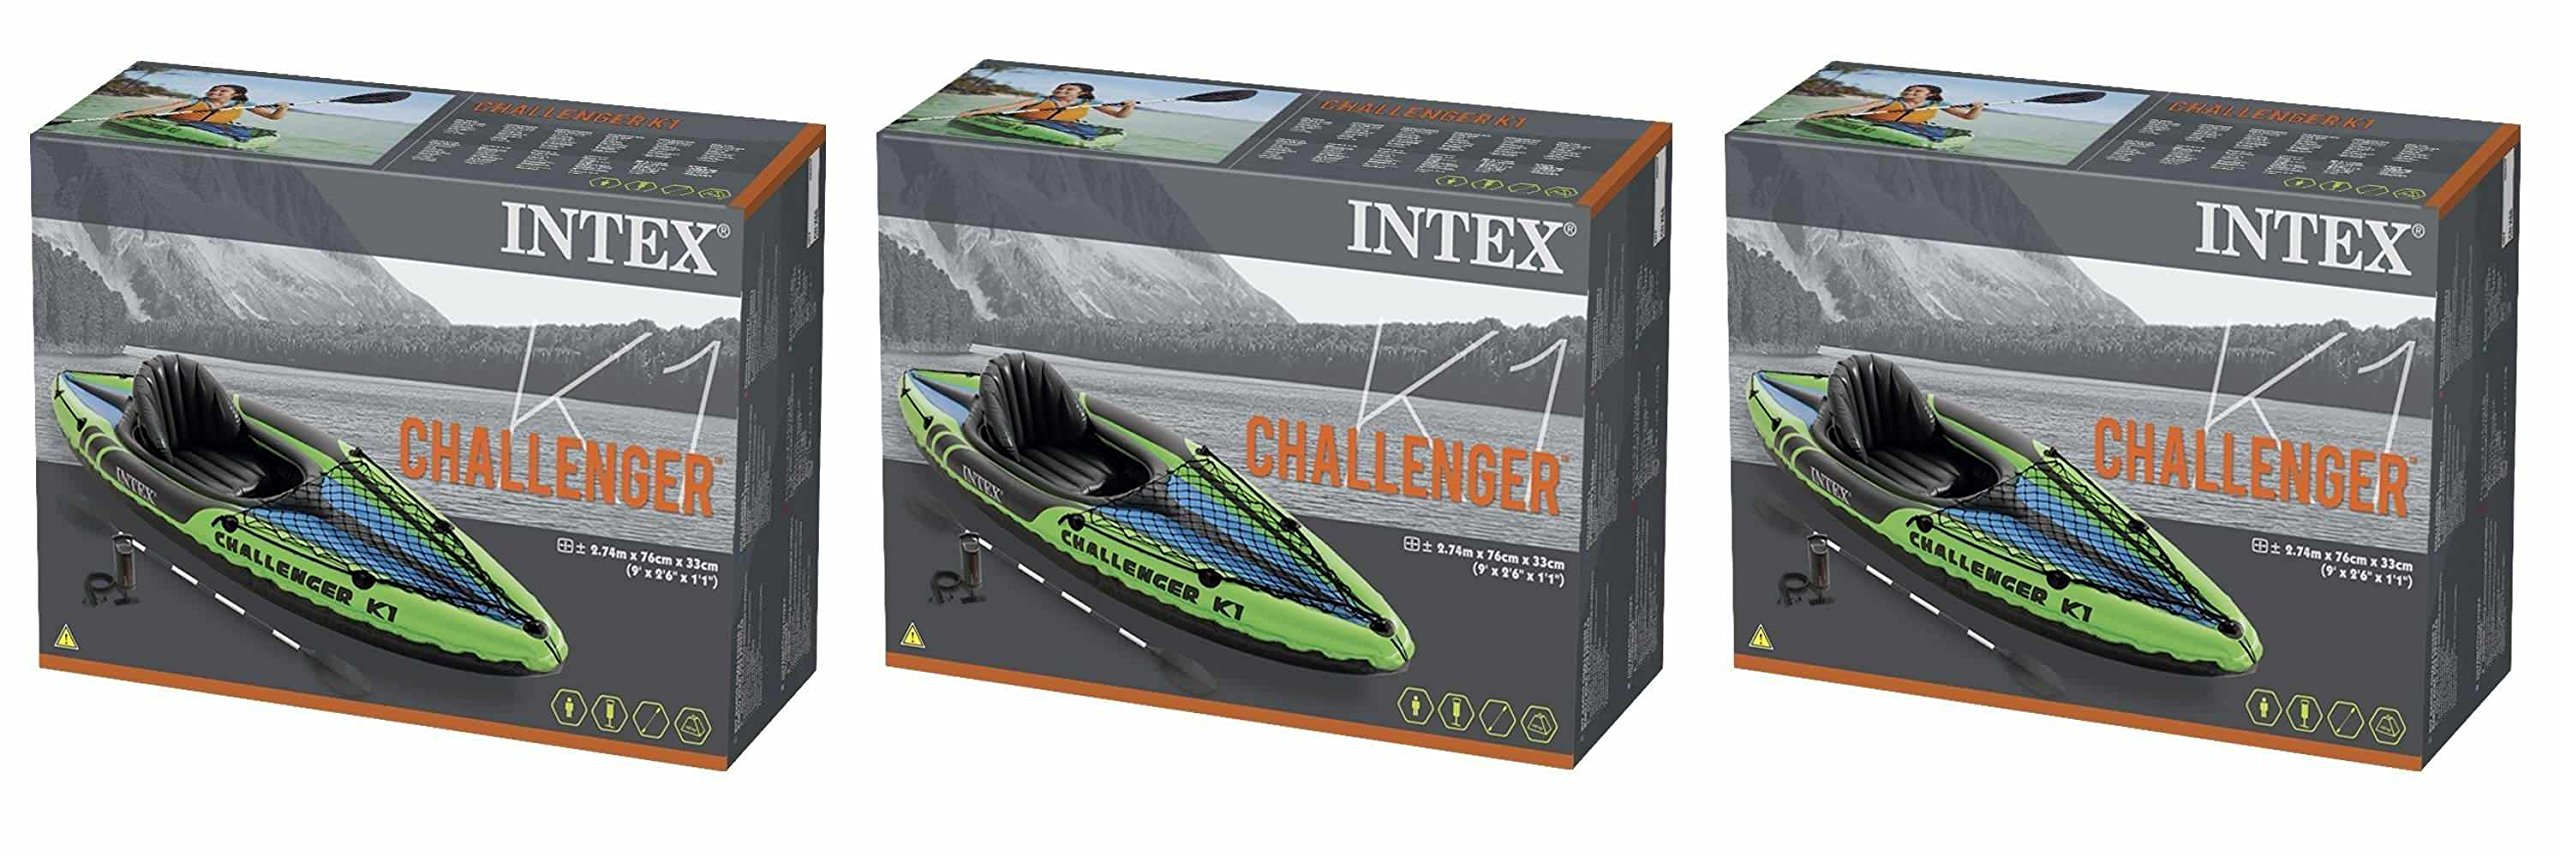 Intex Challenger K1 1-Person Inflatable Sporty Kayak + Oars And Pump | SHIPS SAME DAY FREE AIR PUMP INCLUDED